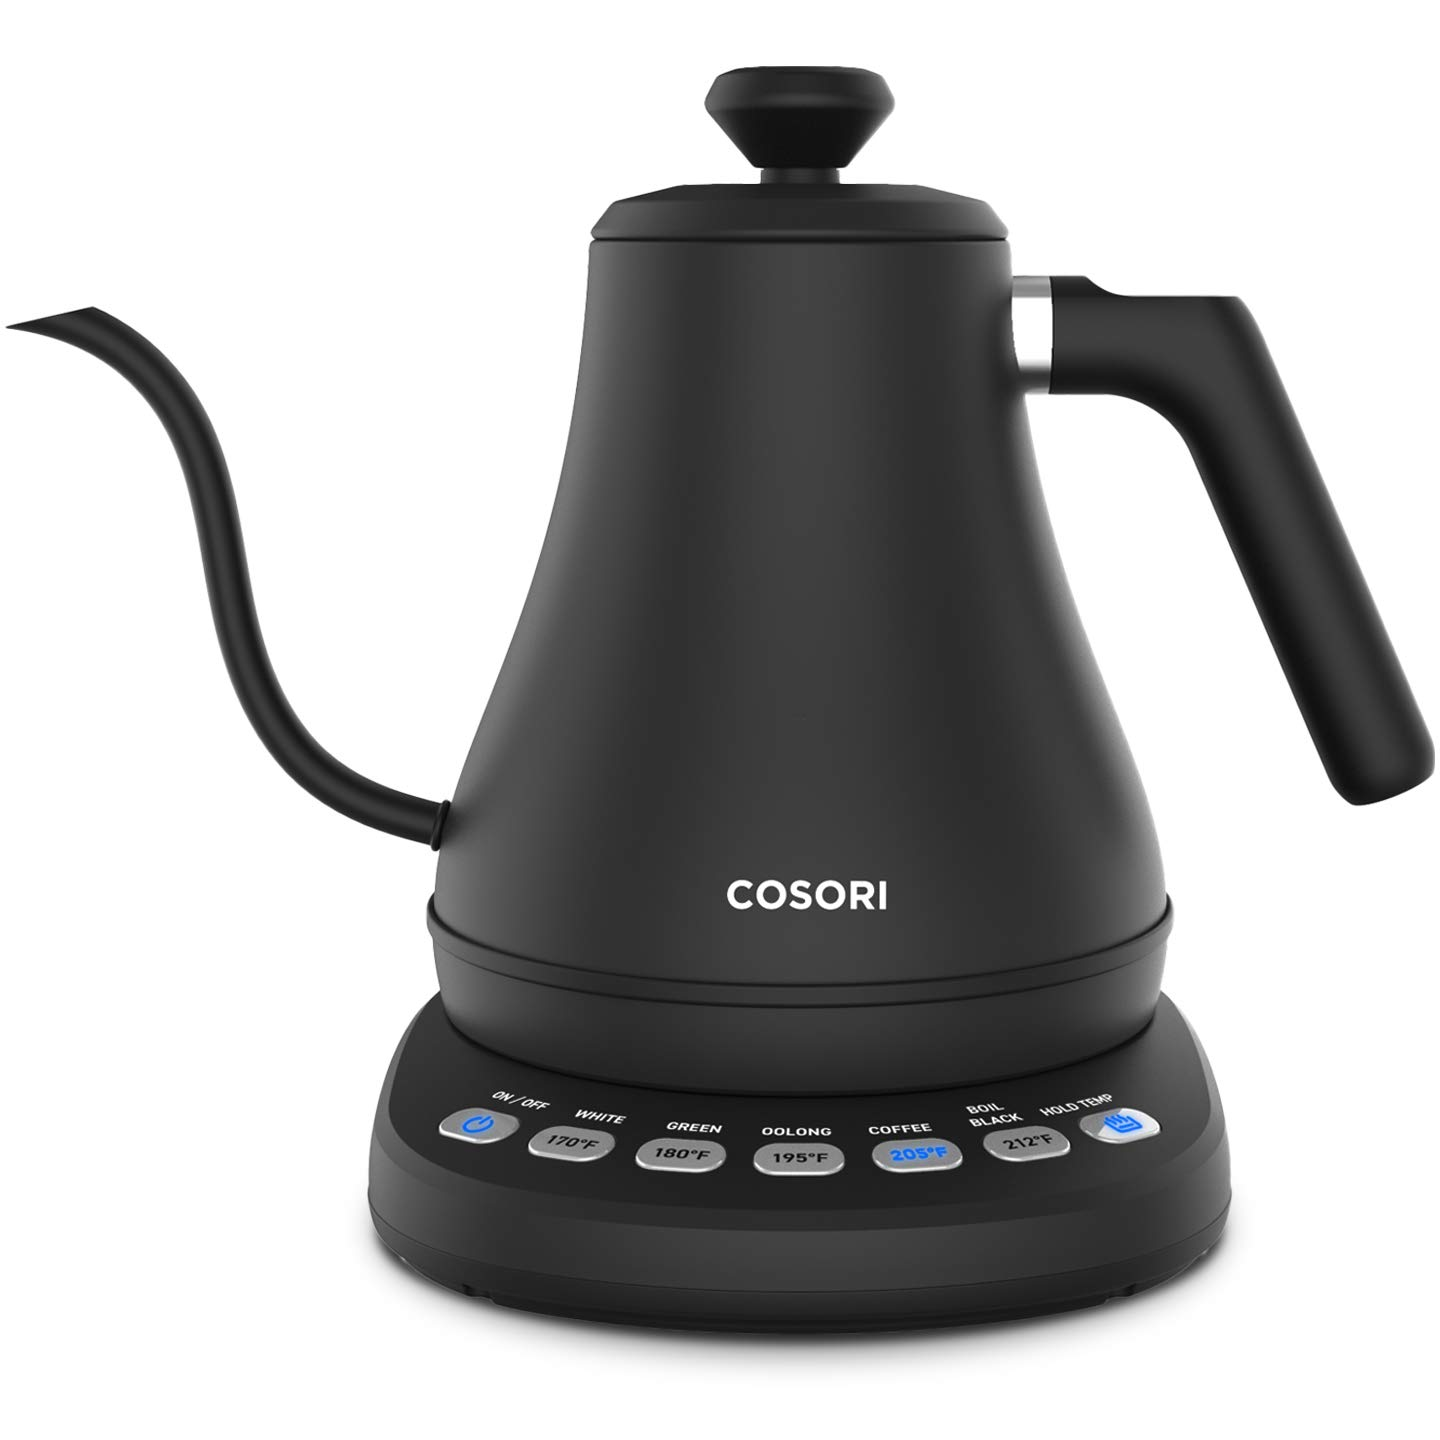 COSORI Electric Gooseneck Kettle with 5 Variable Presets, Pour Over Coffee Kettle Tea Kettle, 100 Stainless Steel Inner Lid Bottom, 1200 Watt Quick Heating, 2-year Warranty, 0.8L, Matte Black